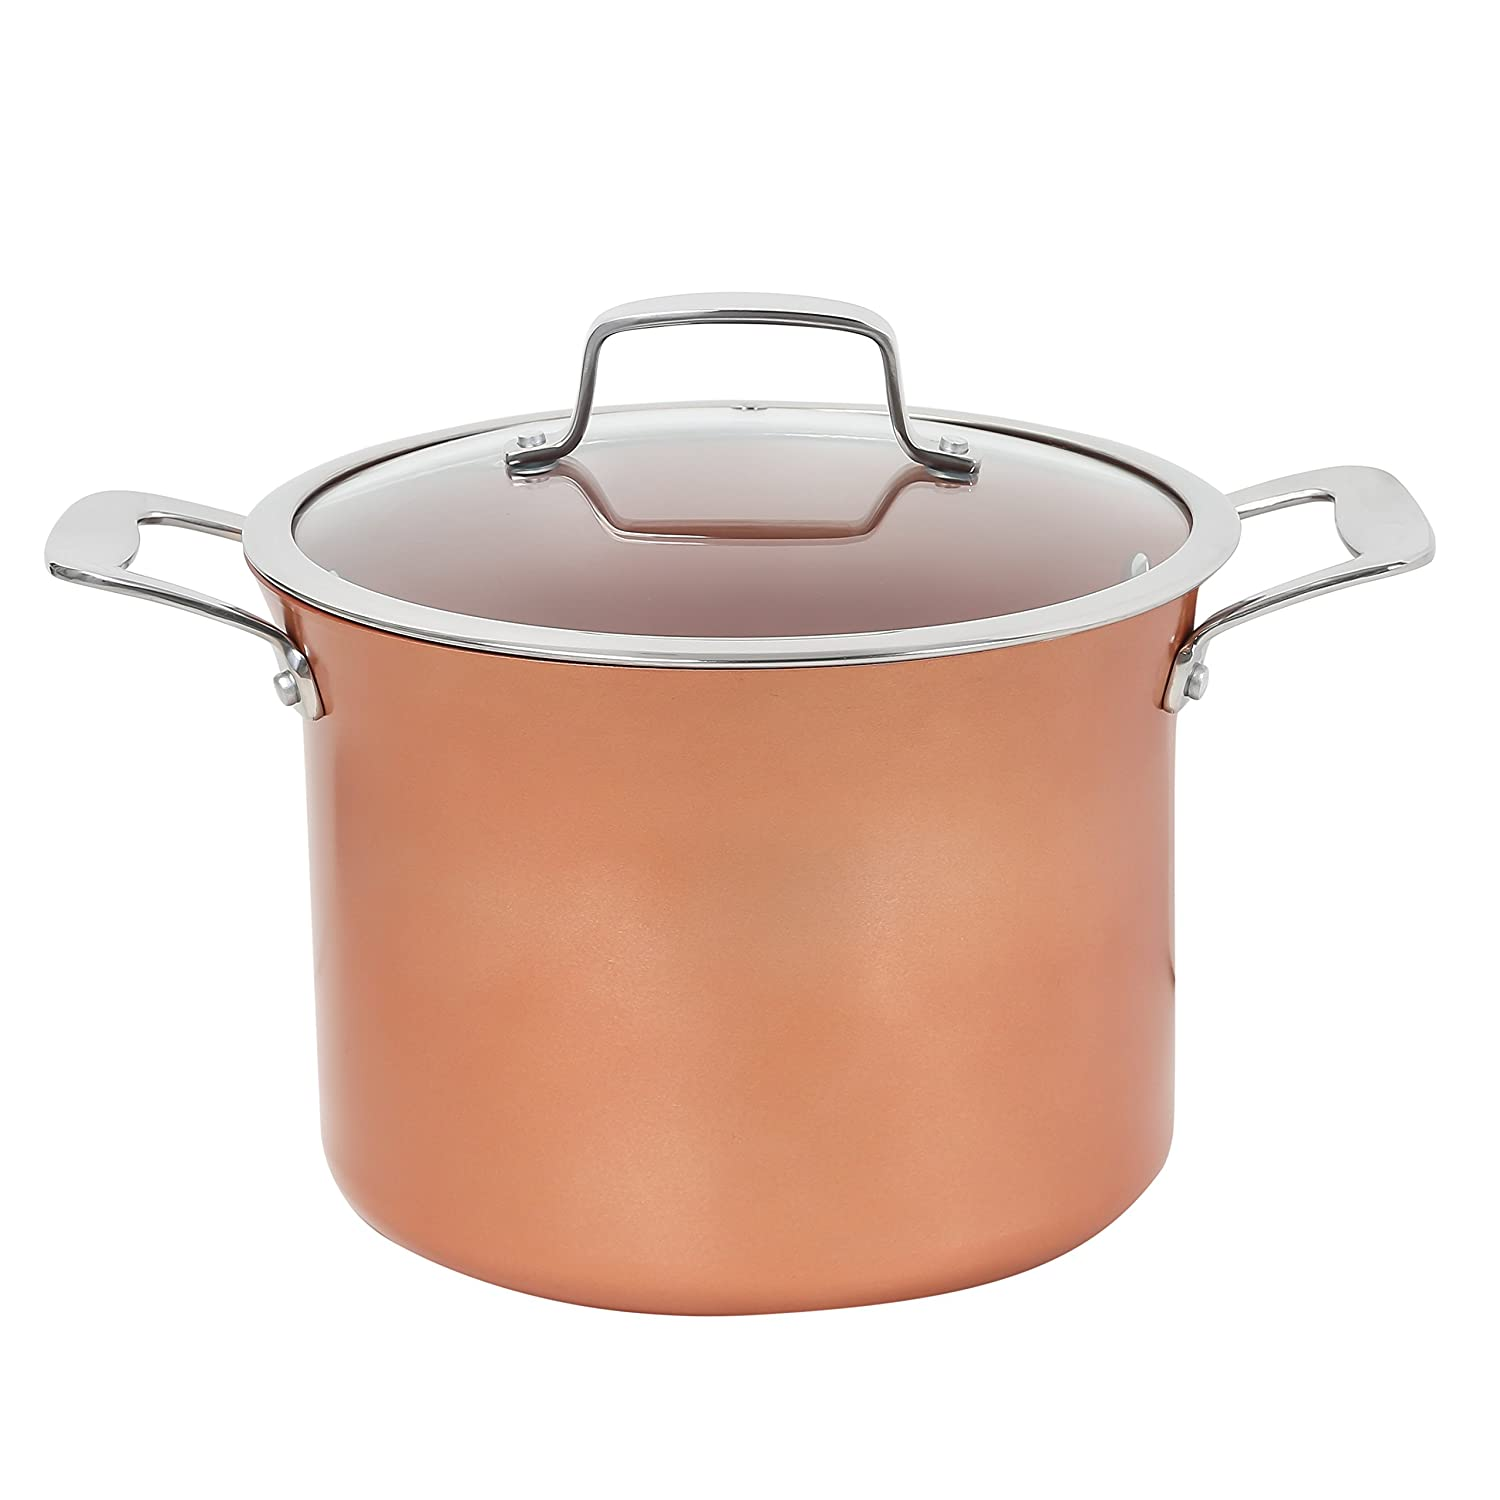 CONCORD 8.5 QT Copper Non Stick Stock Pot Casserole Coppe-Ramic Series Cookware (Induction Compatible)